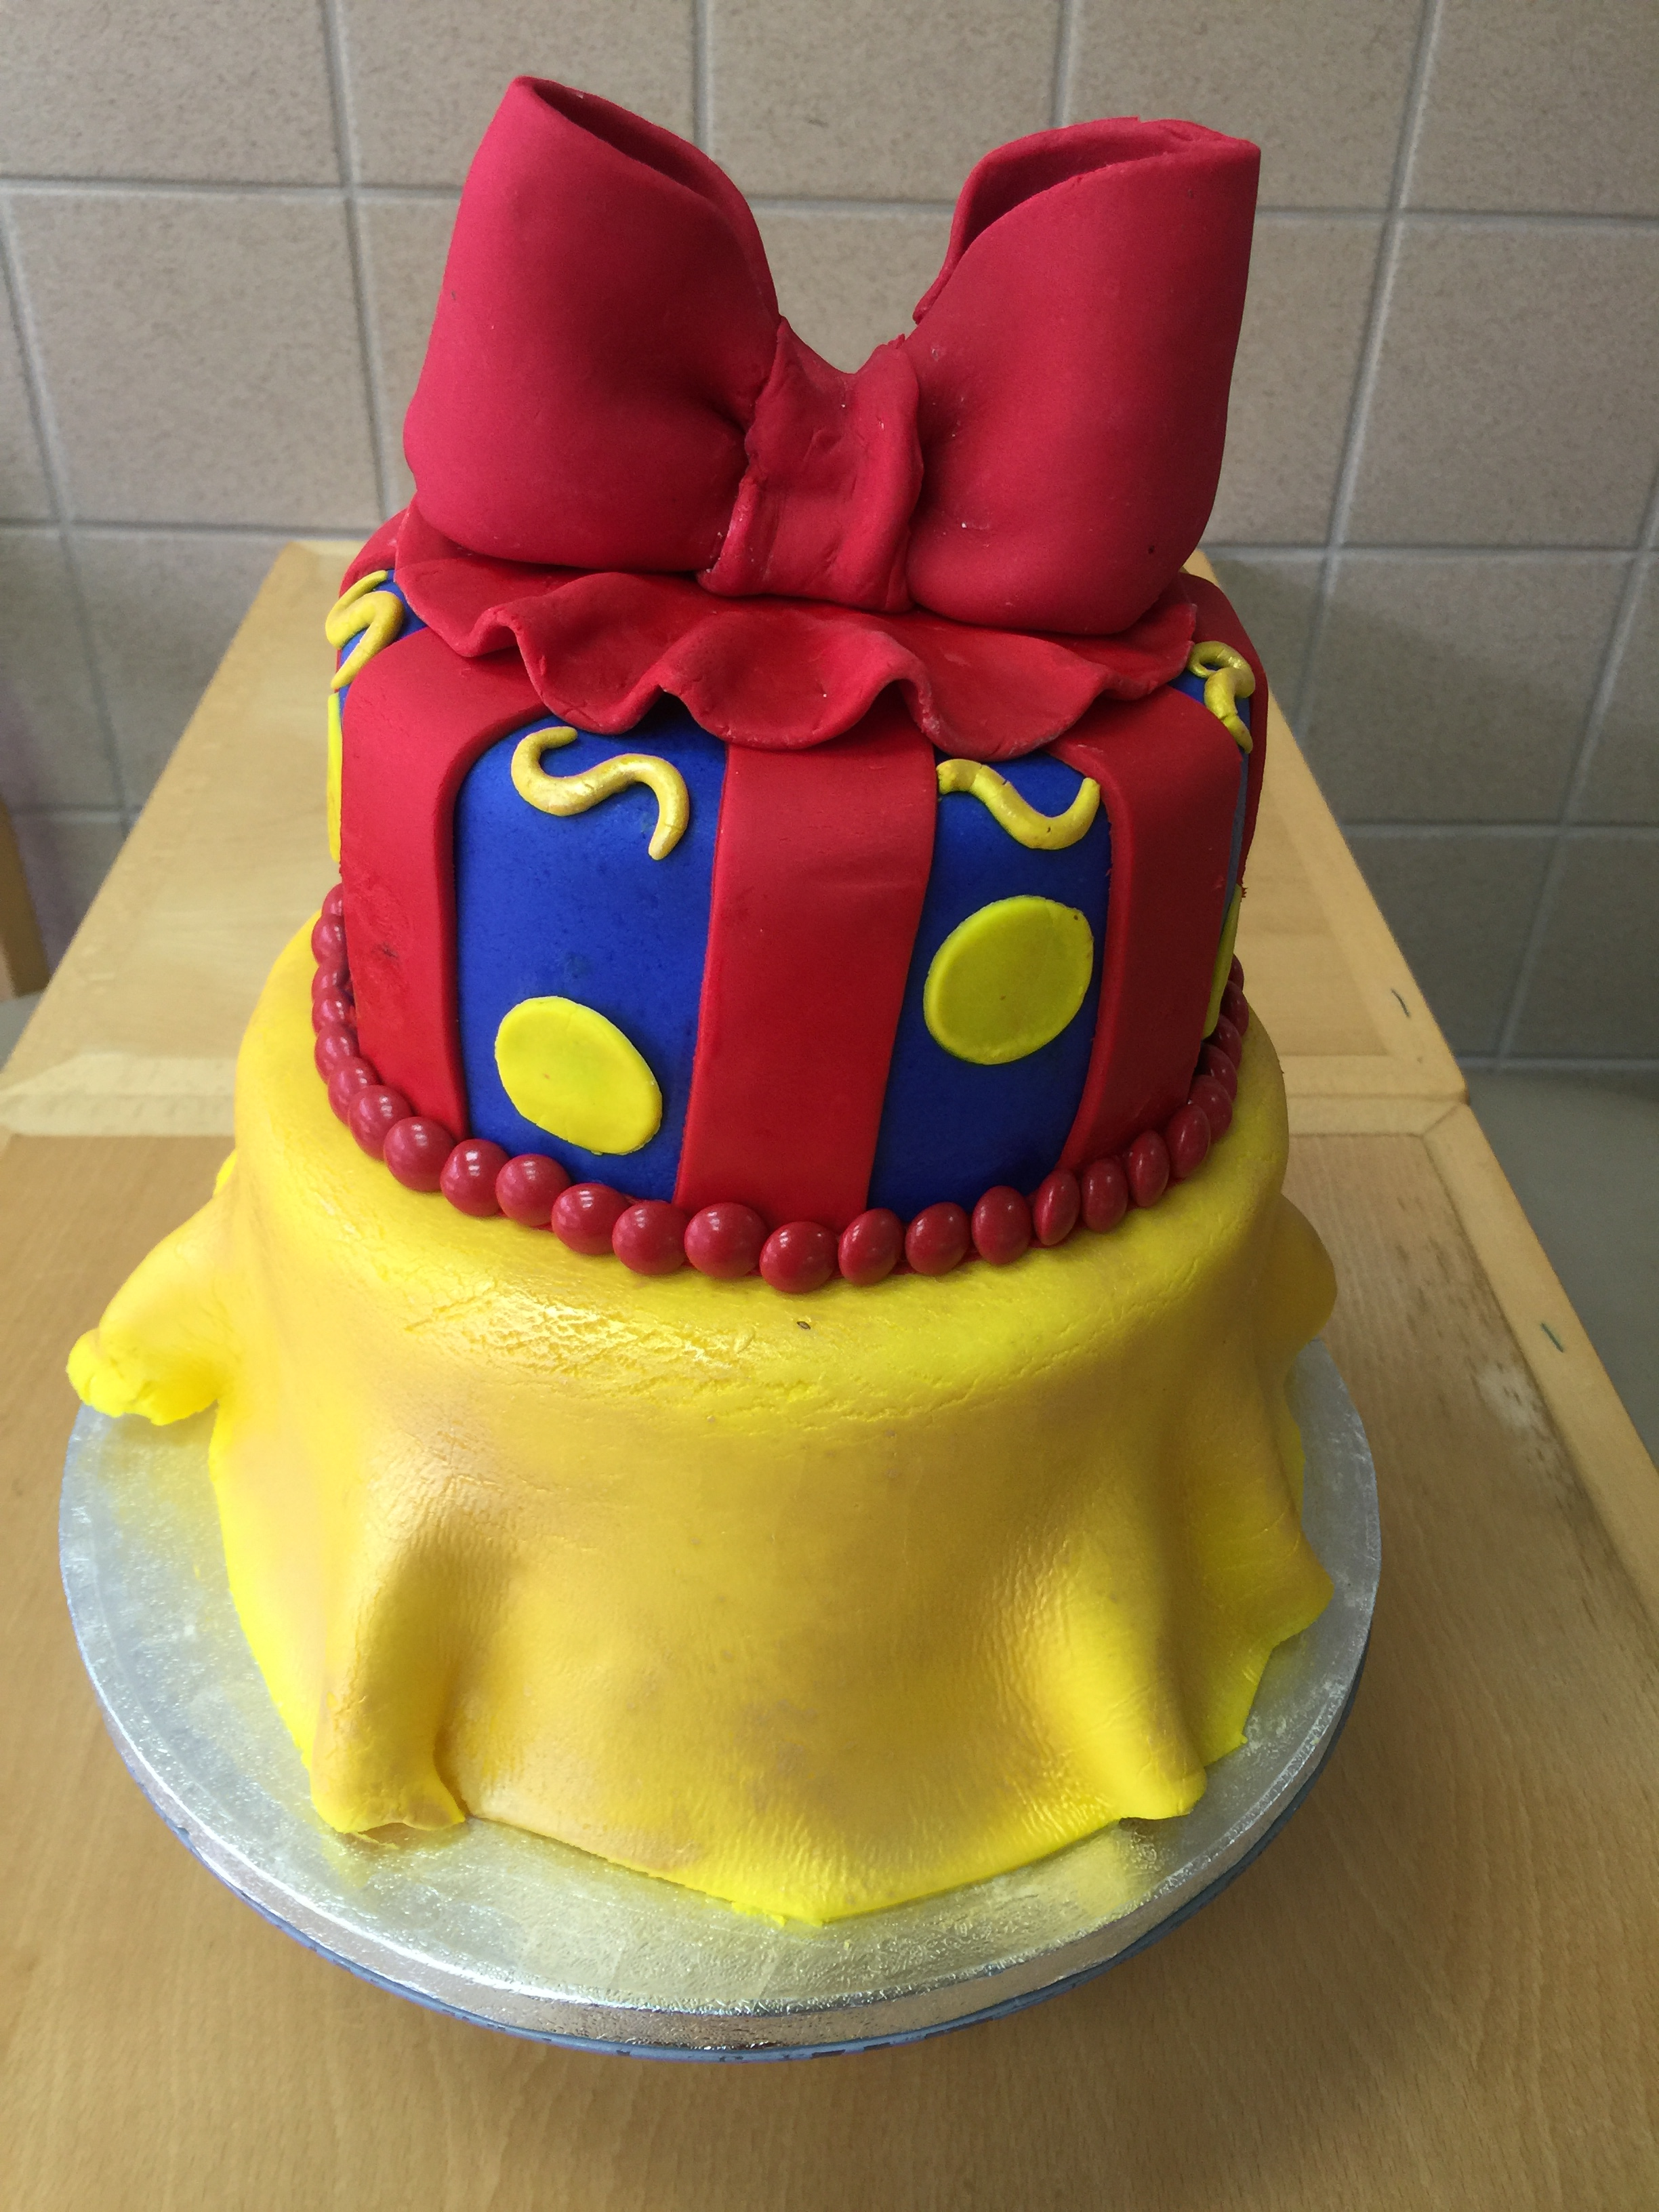 Outstanding Snow White Themed First Birthday Cake Wild Berries Bakery And Cafe Funny Birthday Cards Online Alyptdamsfinfo